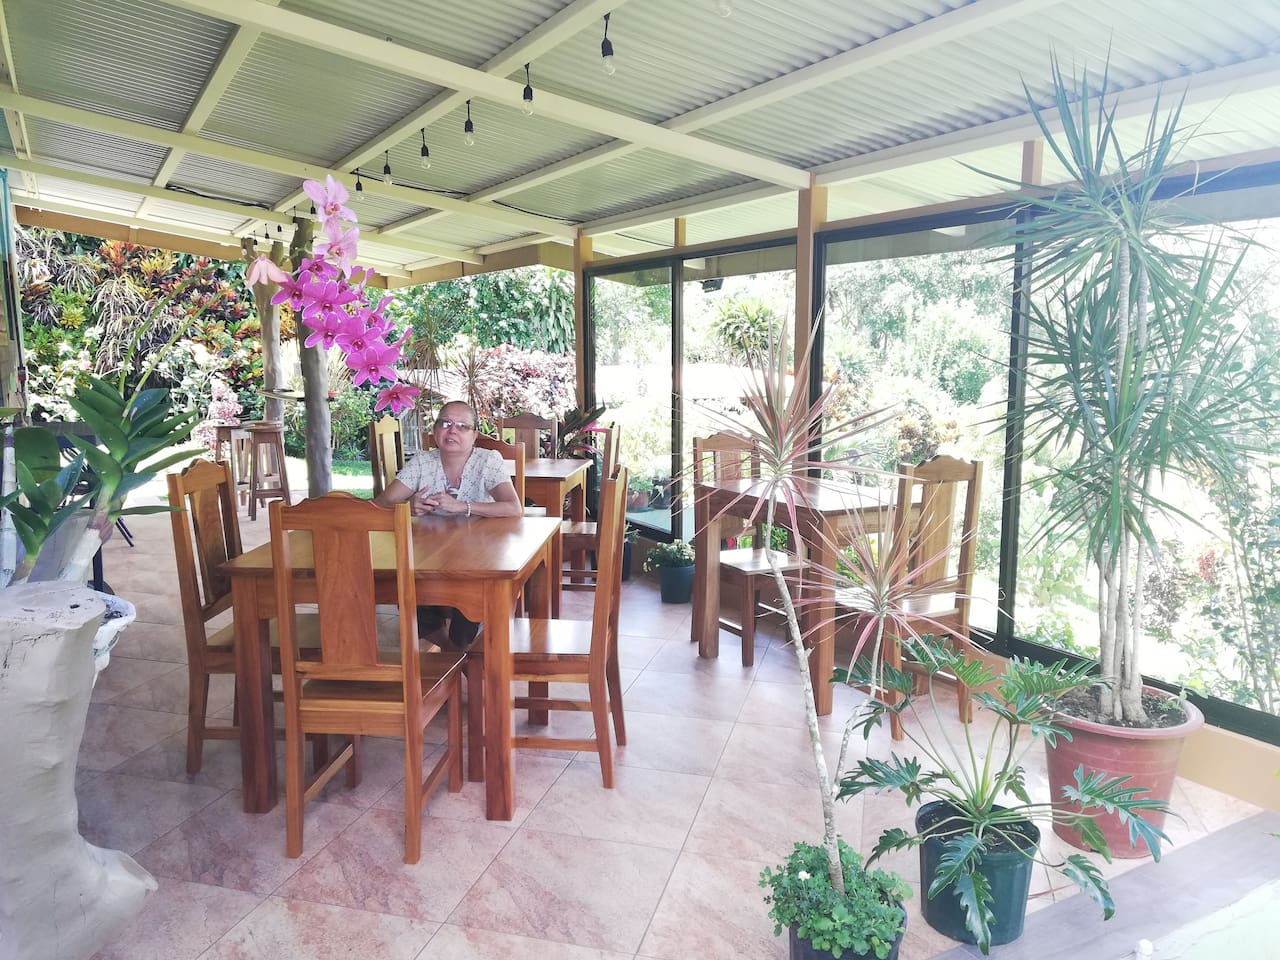 Guest Terrace - Guest have terrace access day and night even while it rains.  Terrace is a one level  structure without stairs to climb. Guest can have breakfast, converse, play games and eat their late night snacks while sitting in the terrace.